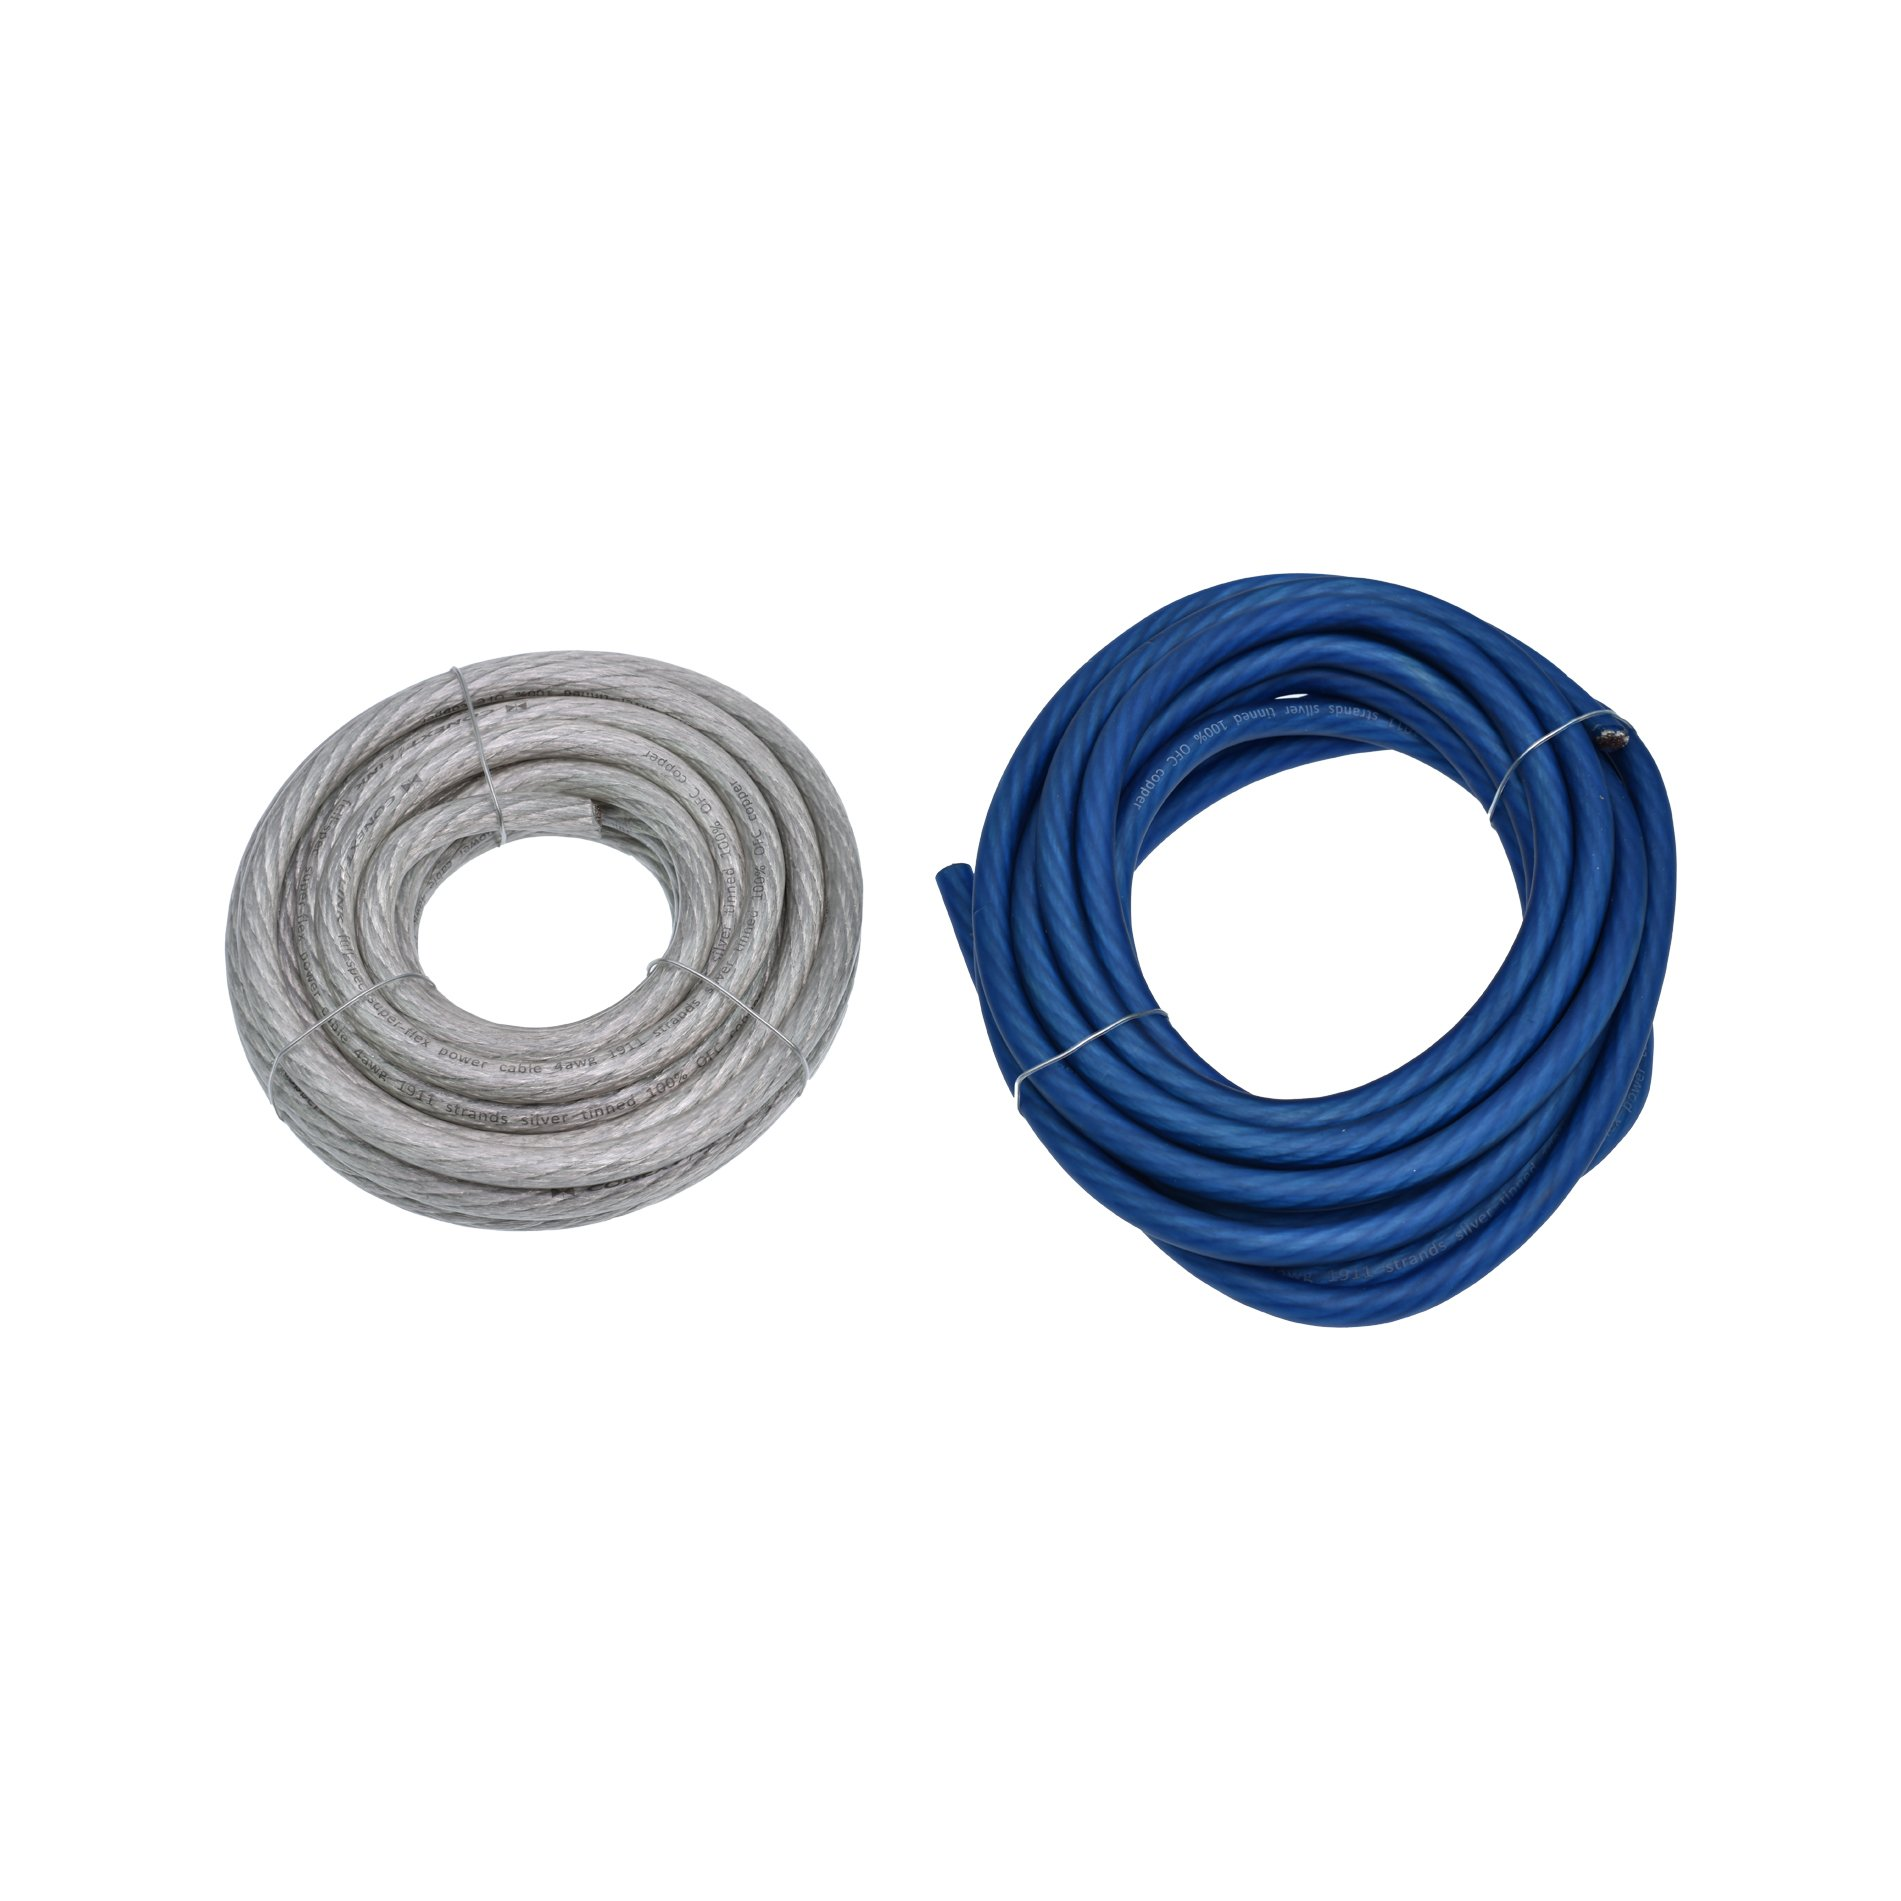 Conext Link 40 FT 4 AWG GA Full Gauge Battery Power Cable Ground Wire OFC Copper Frost Blue and Clear Silver Each 20ft